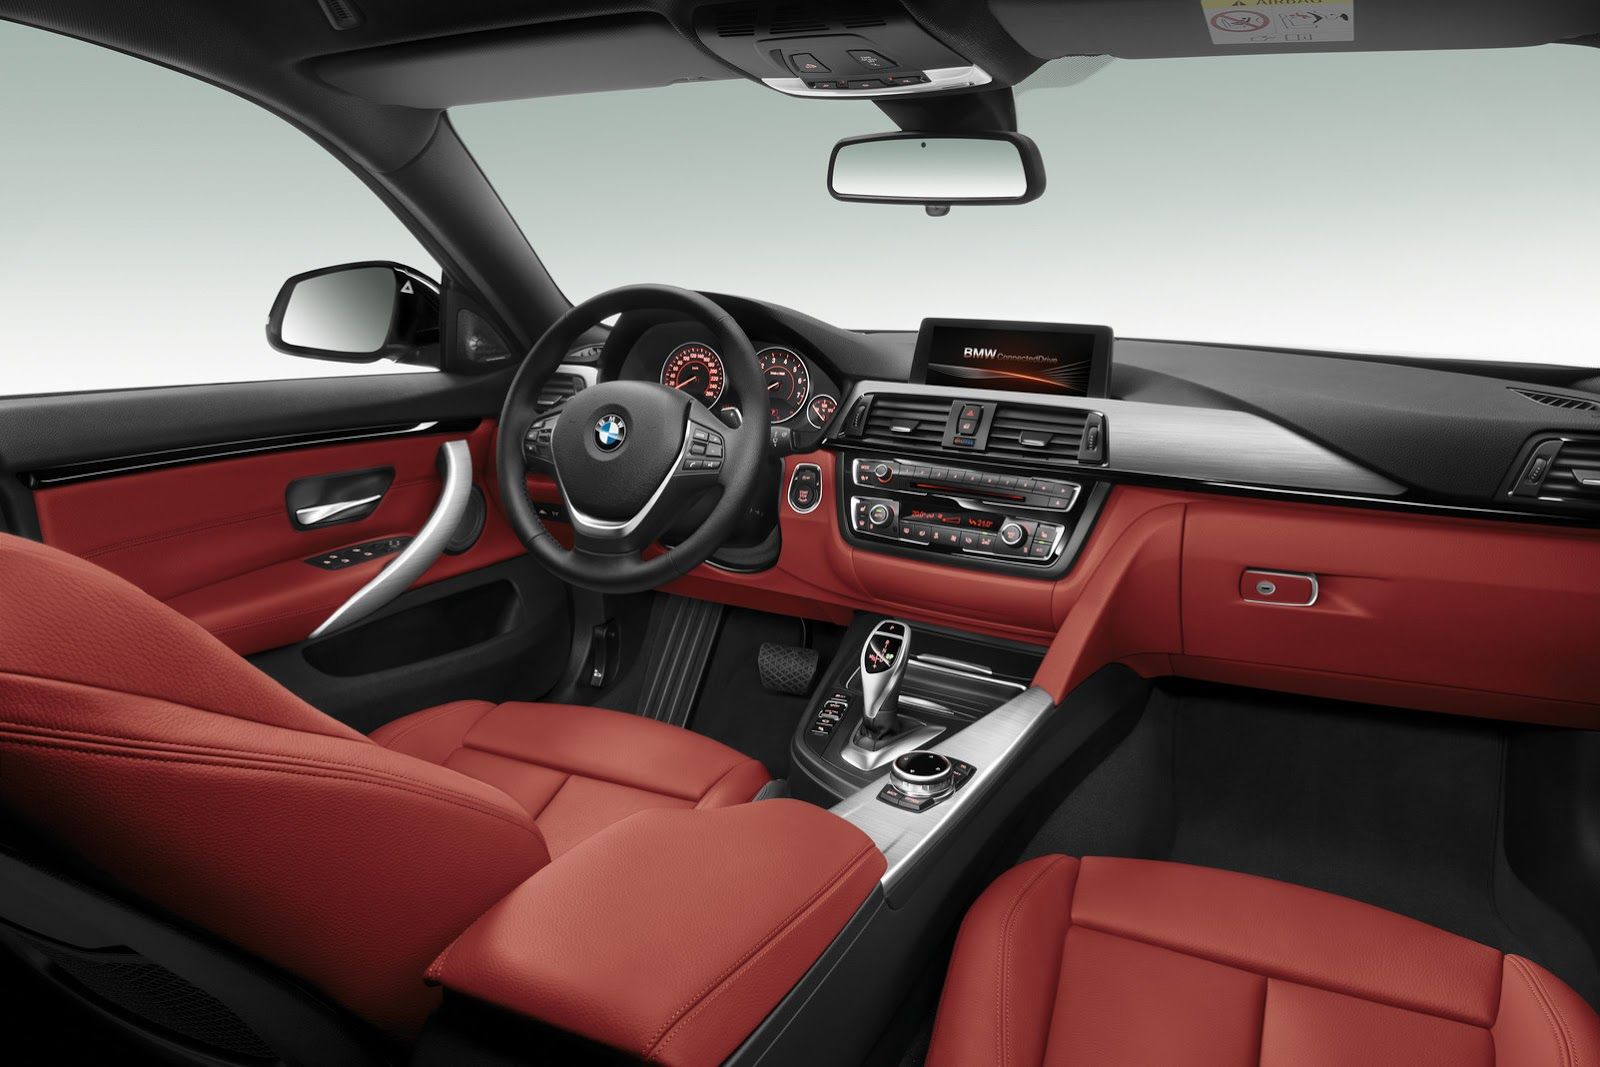 New 2015 Bmw 4 Series Gran Coupe Officially Revealed 131 Photos